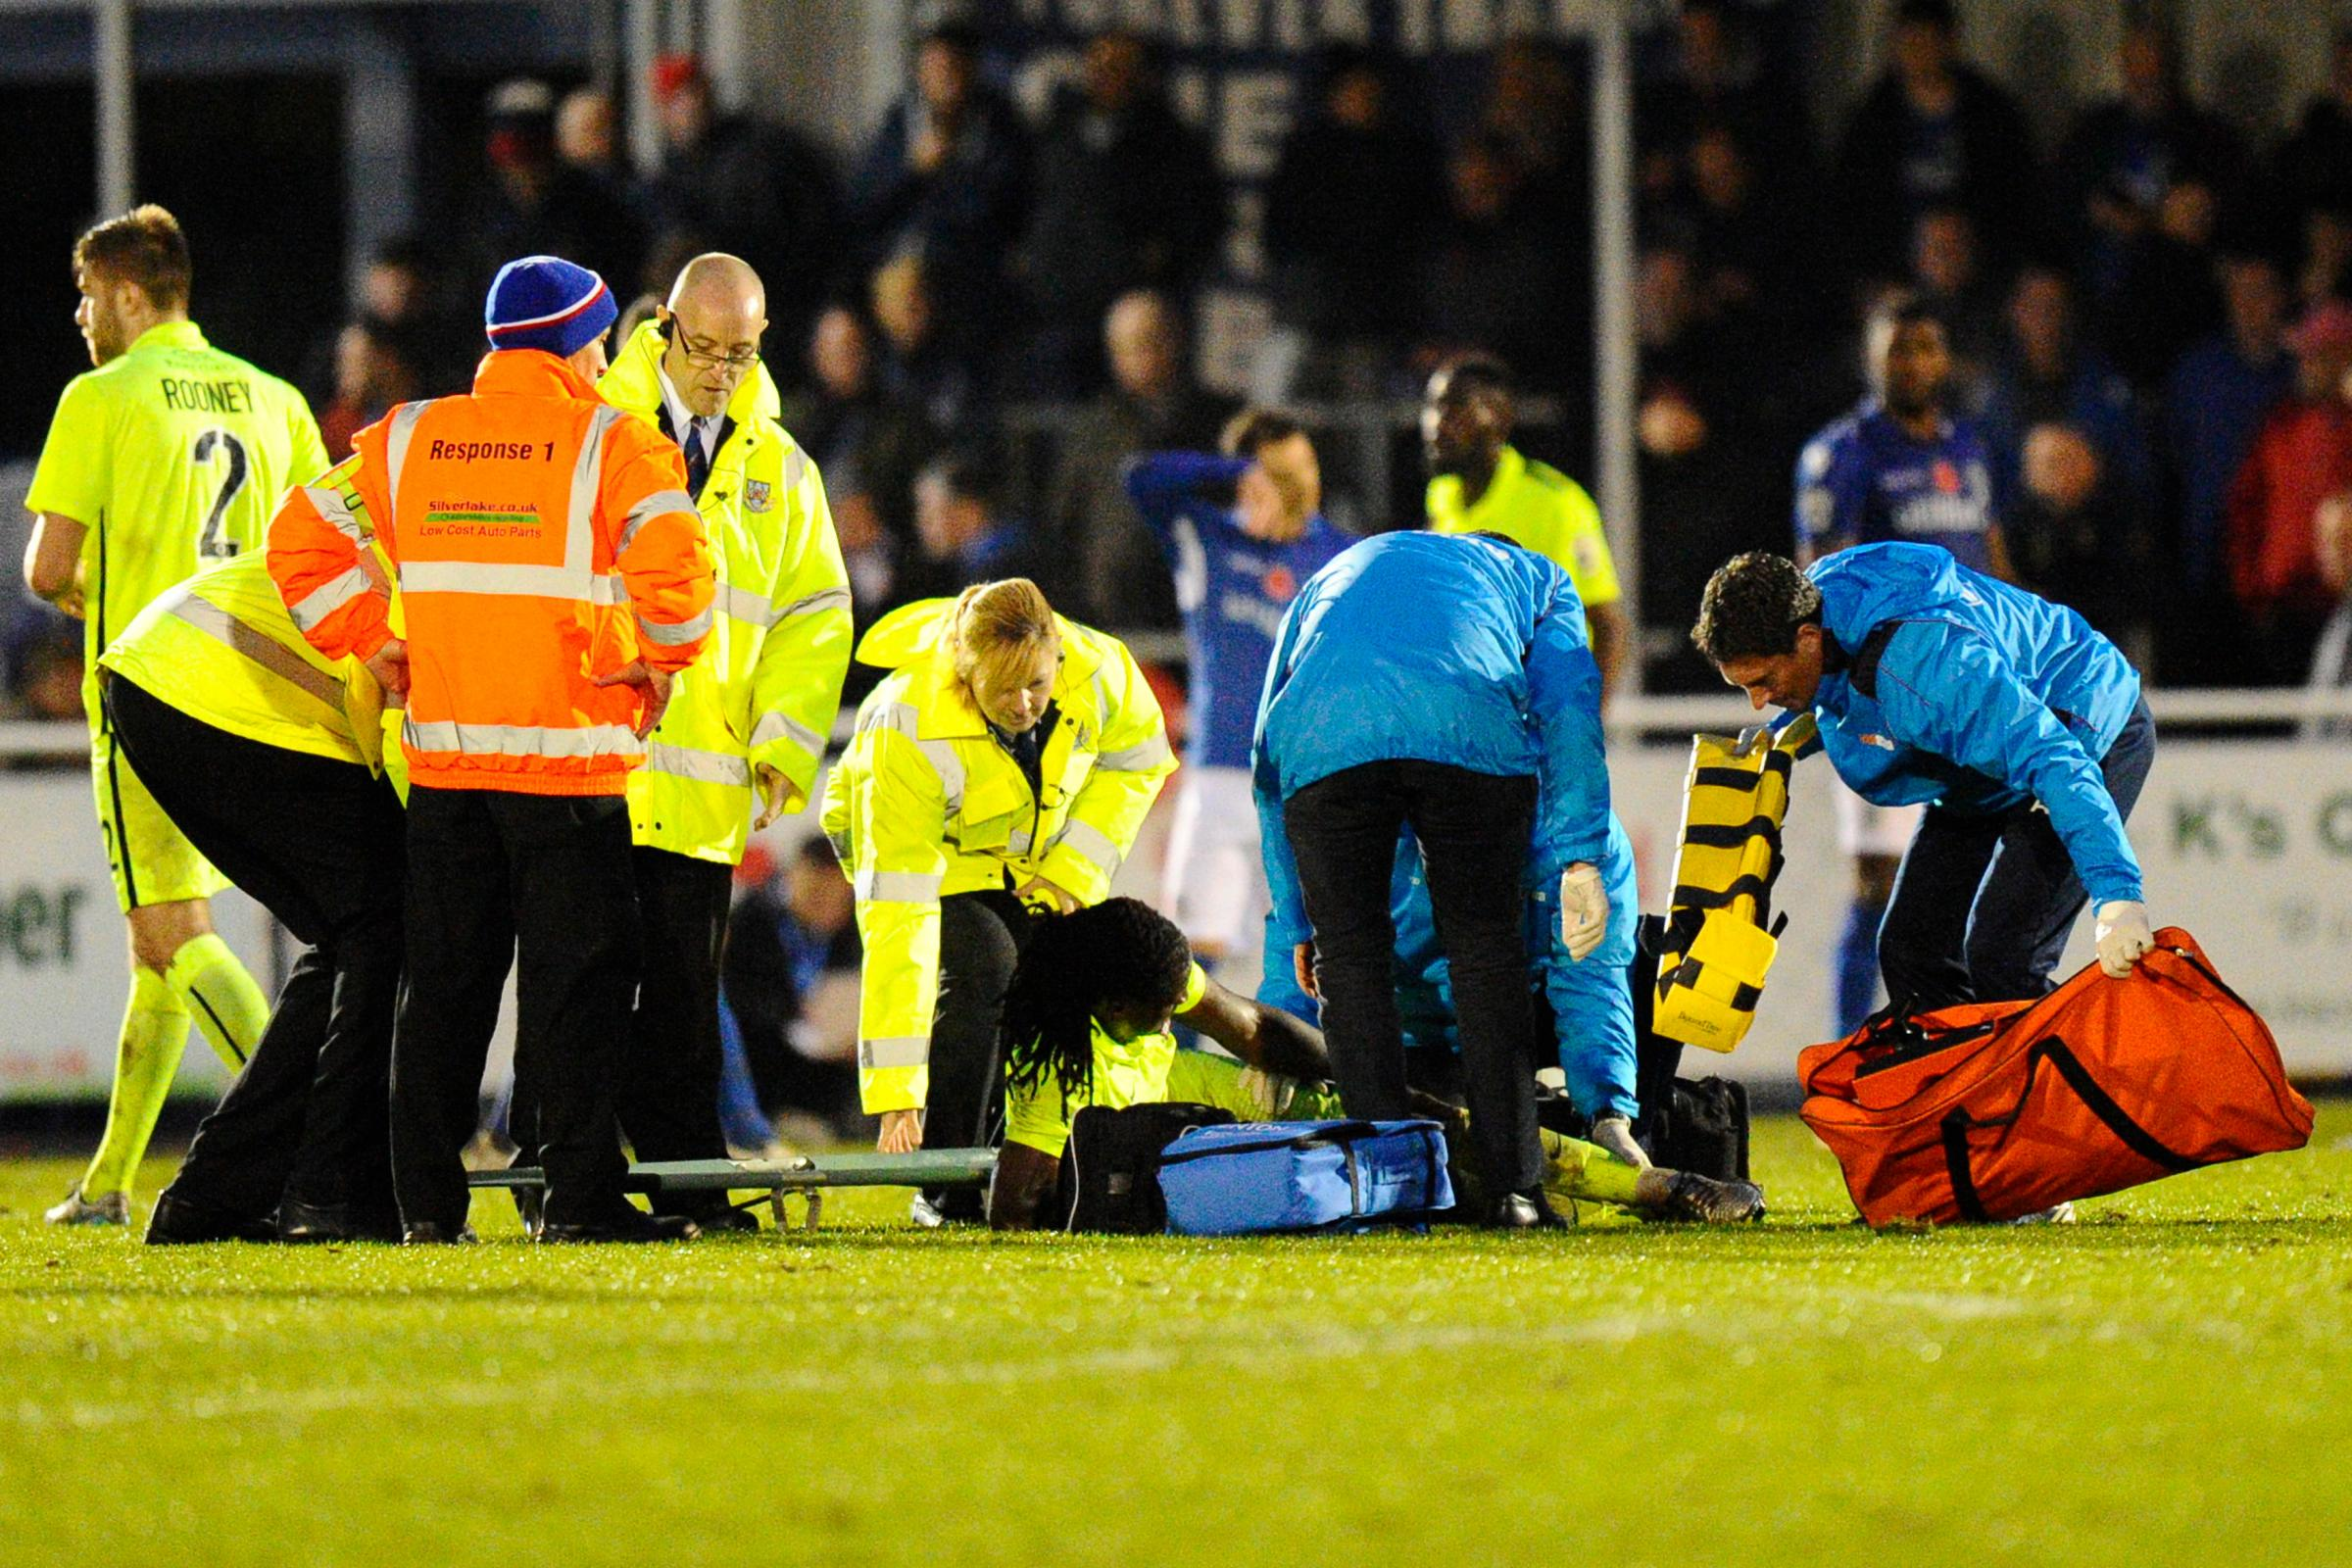 LENGTHY LAY-OFF: Clovis Kamdjo, pictured being treated during Saturday's 1-1 draw at Eastleigh, is facing nine months on the sidelines due to cruciate ligament damage